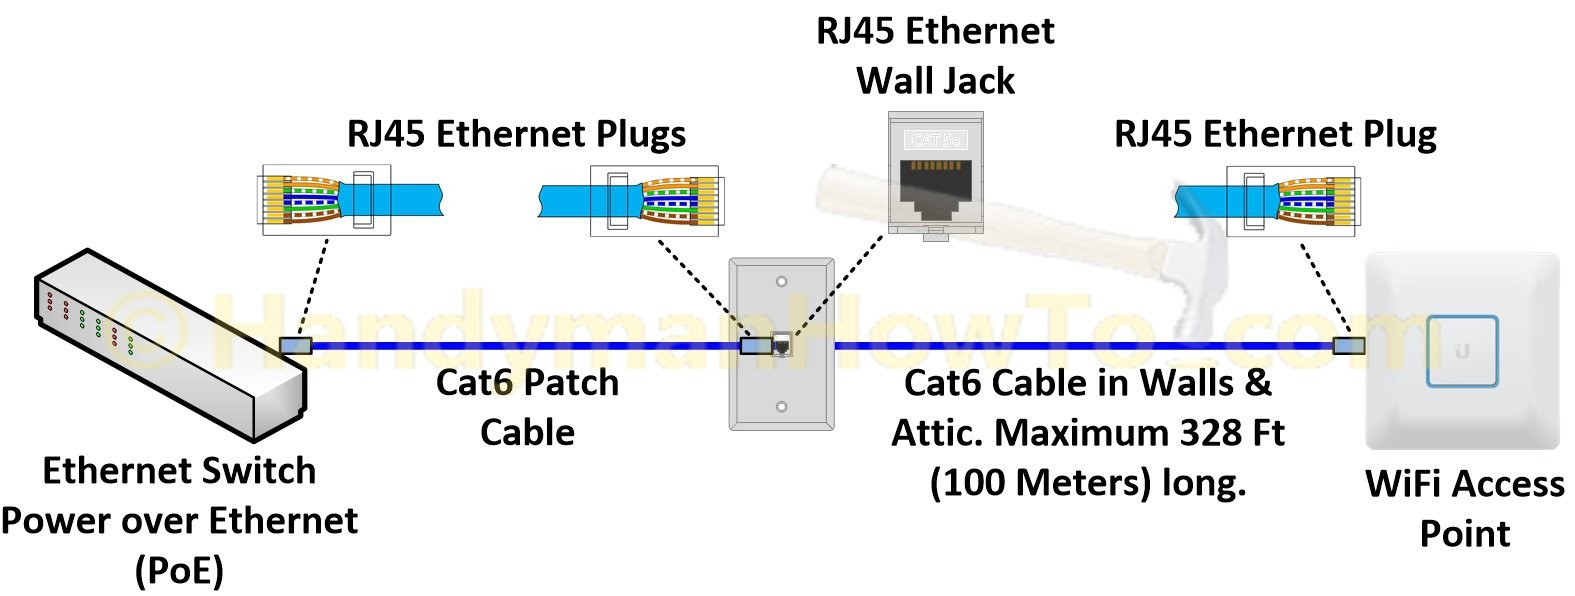 Cat 6 Cable Wiring Diagram wiring diagrams